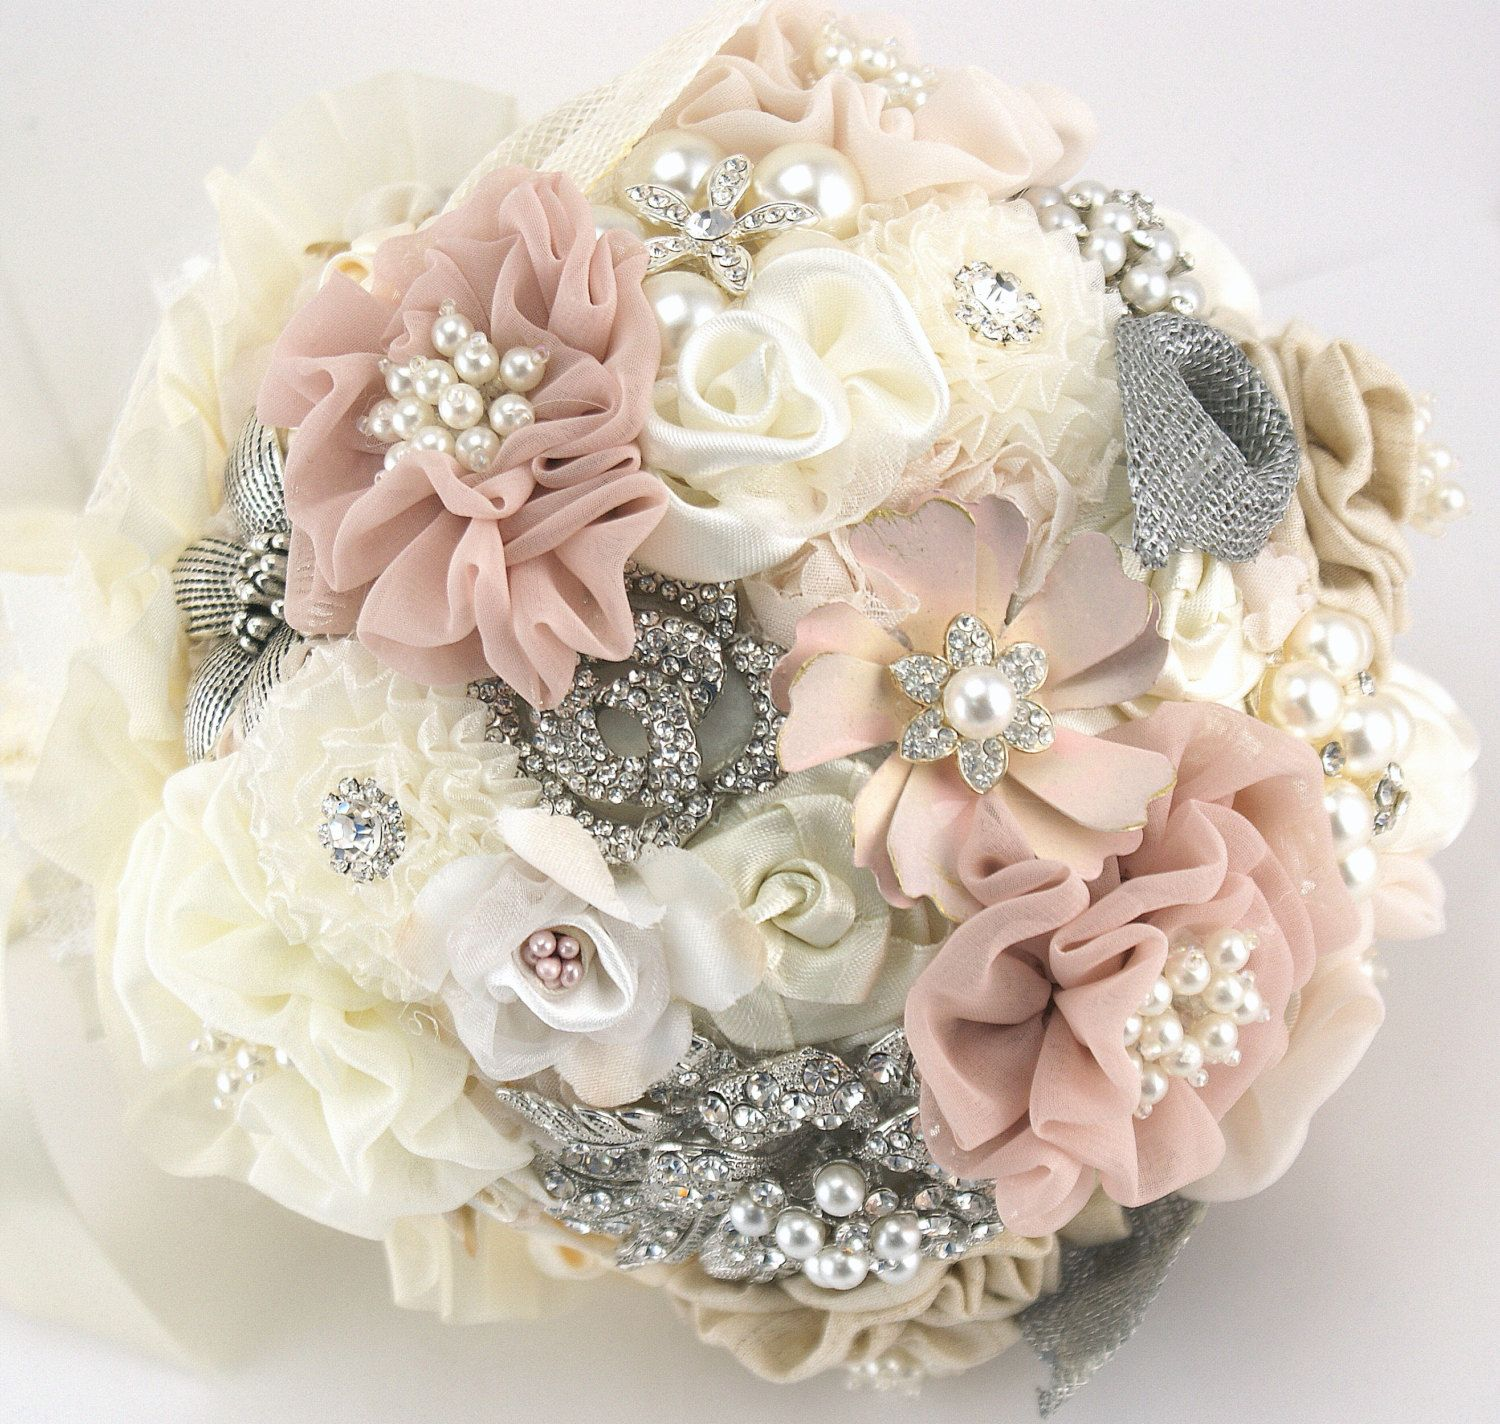 Brooch Bouquet Chic Glam In Ivory And Blush With Linen By Solbijou